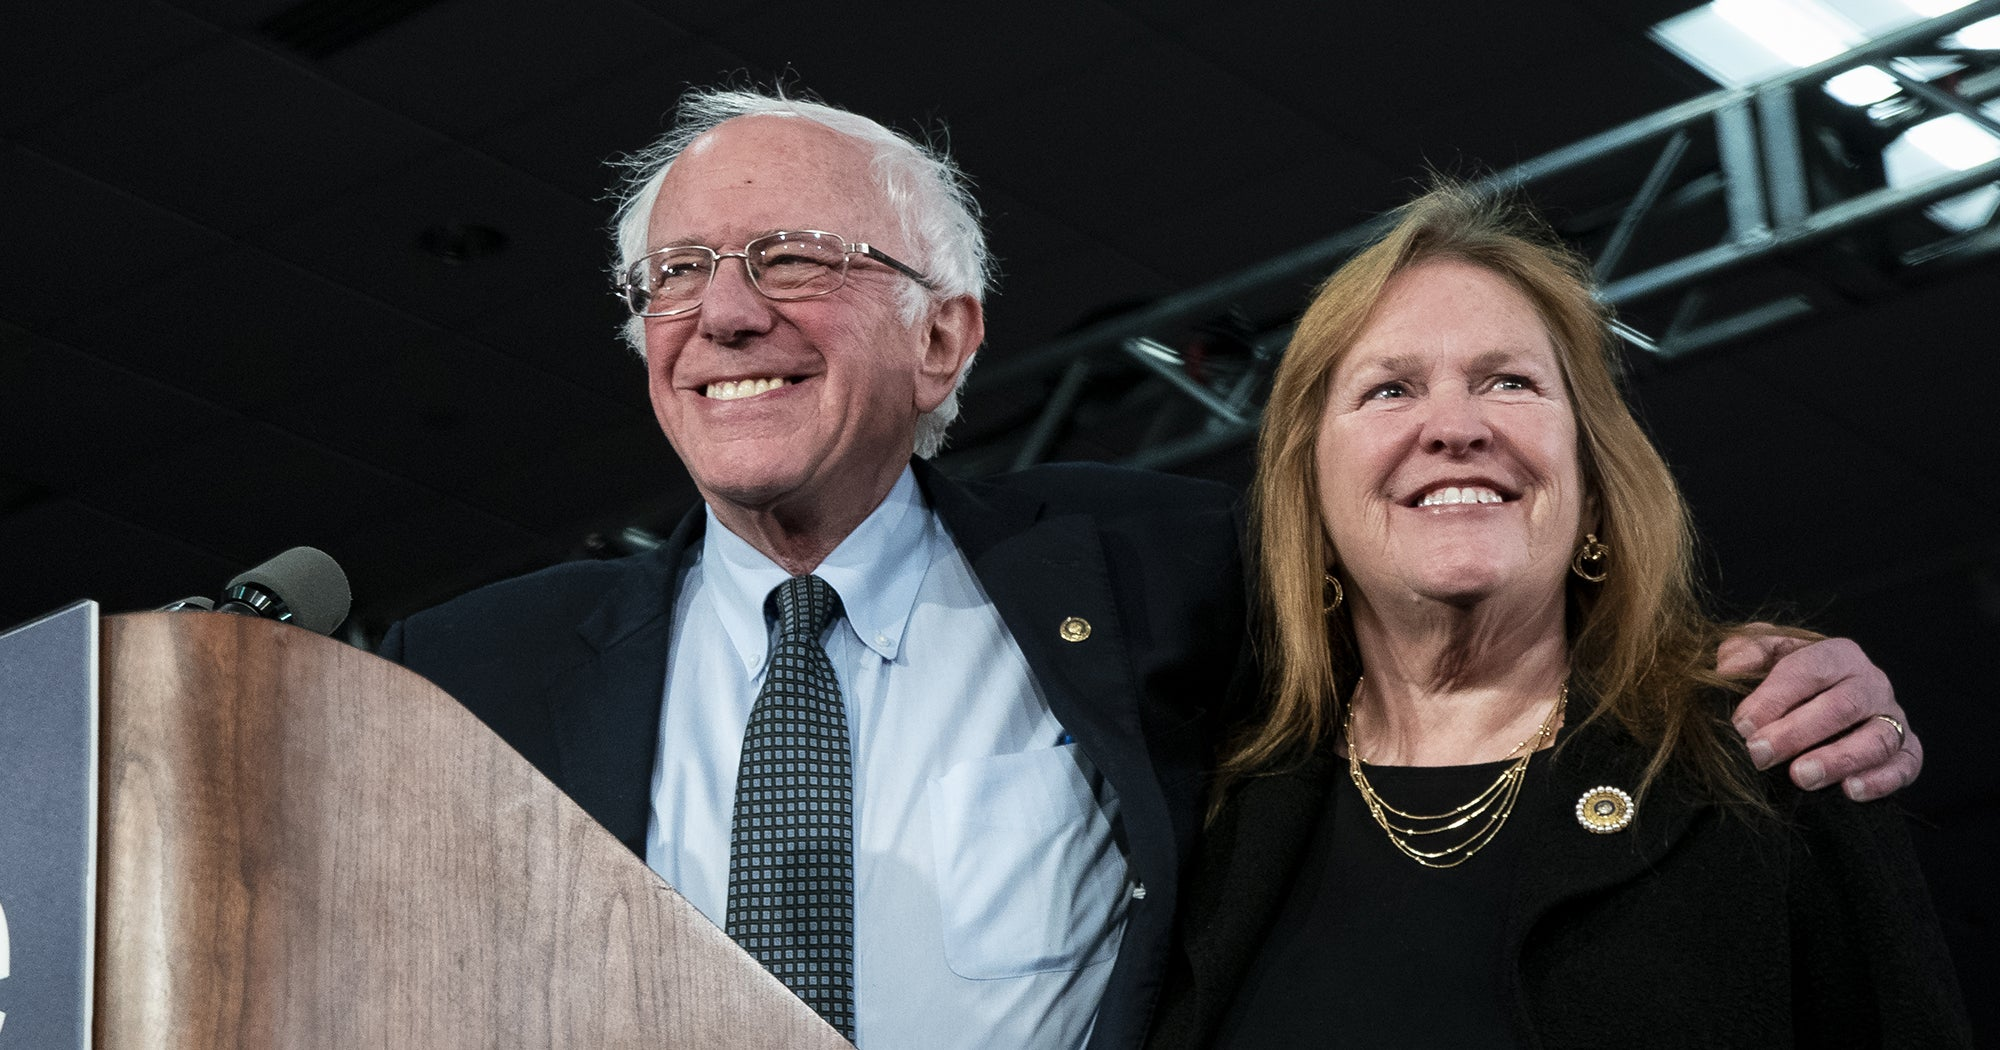 Everything You Should Know About Jane O'Meara, Bernie Sanders' Wife